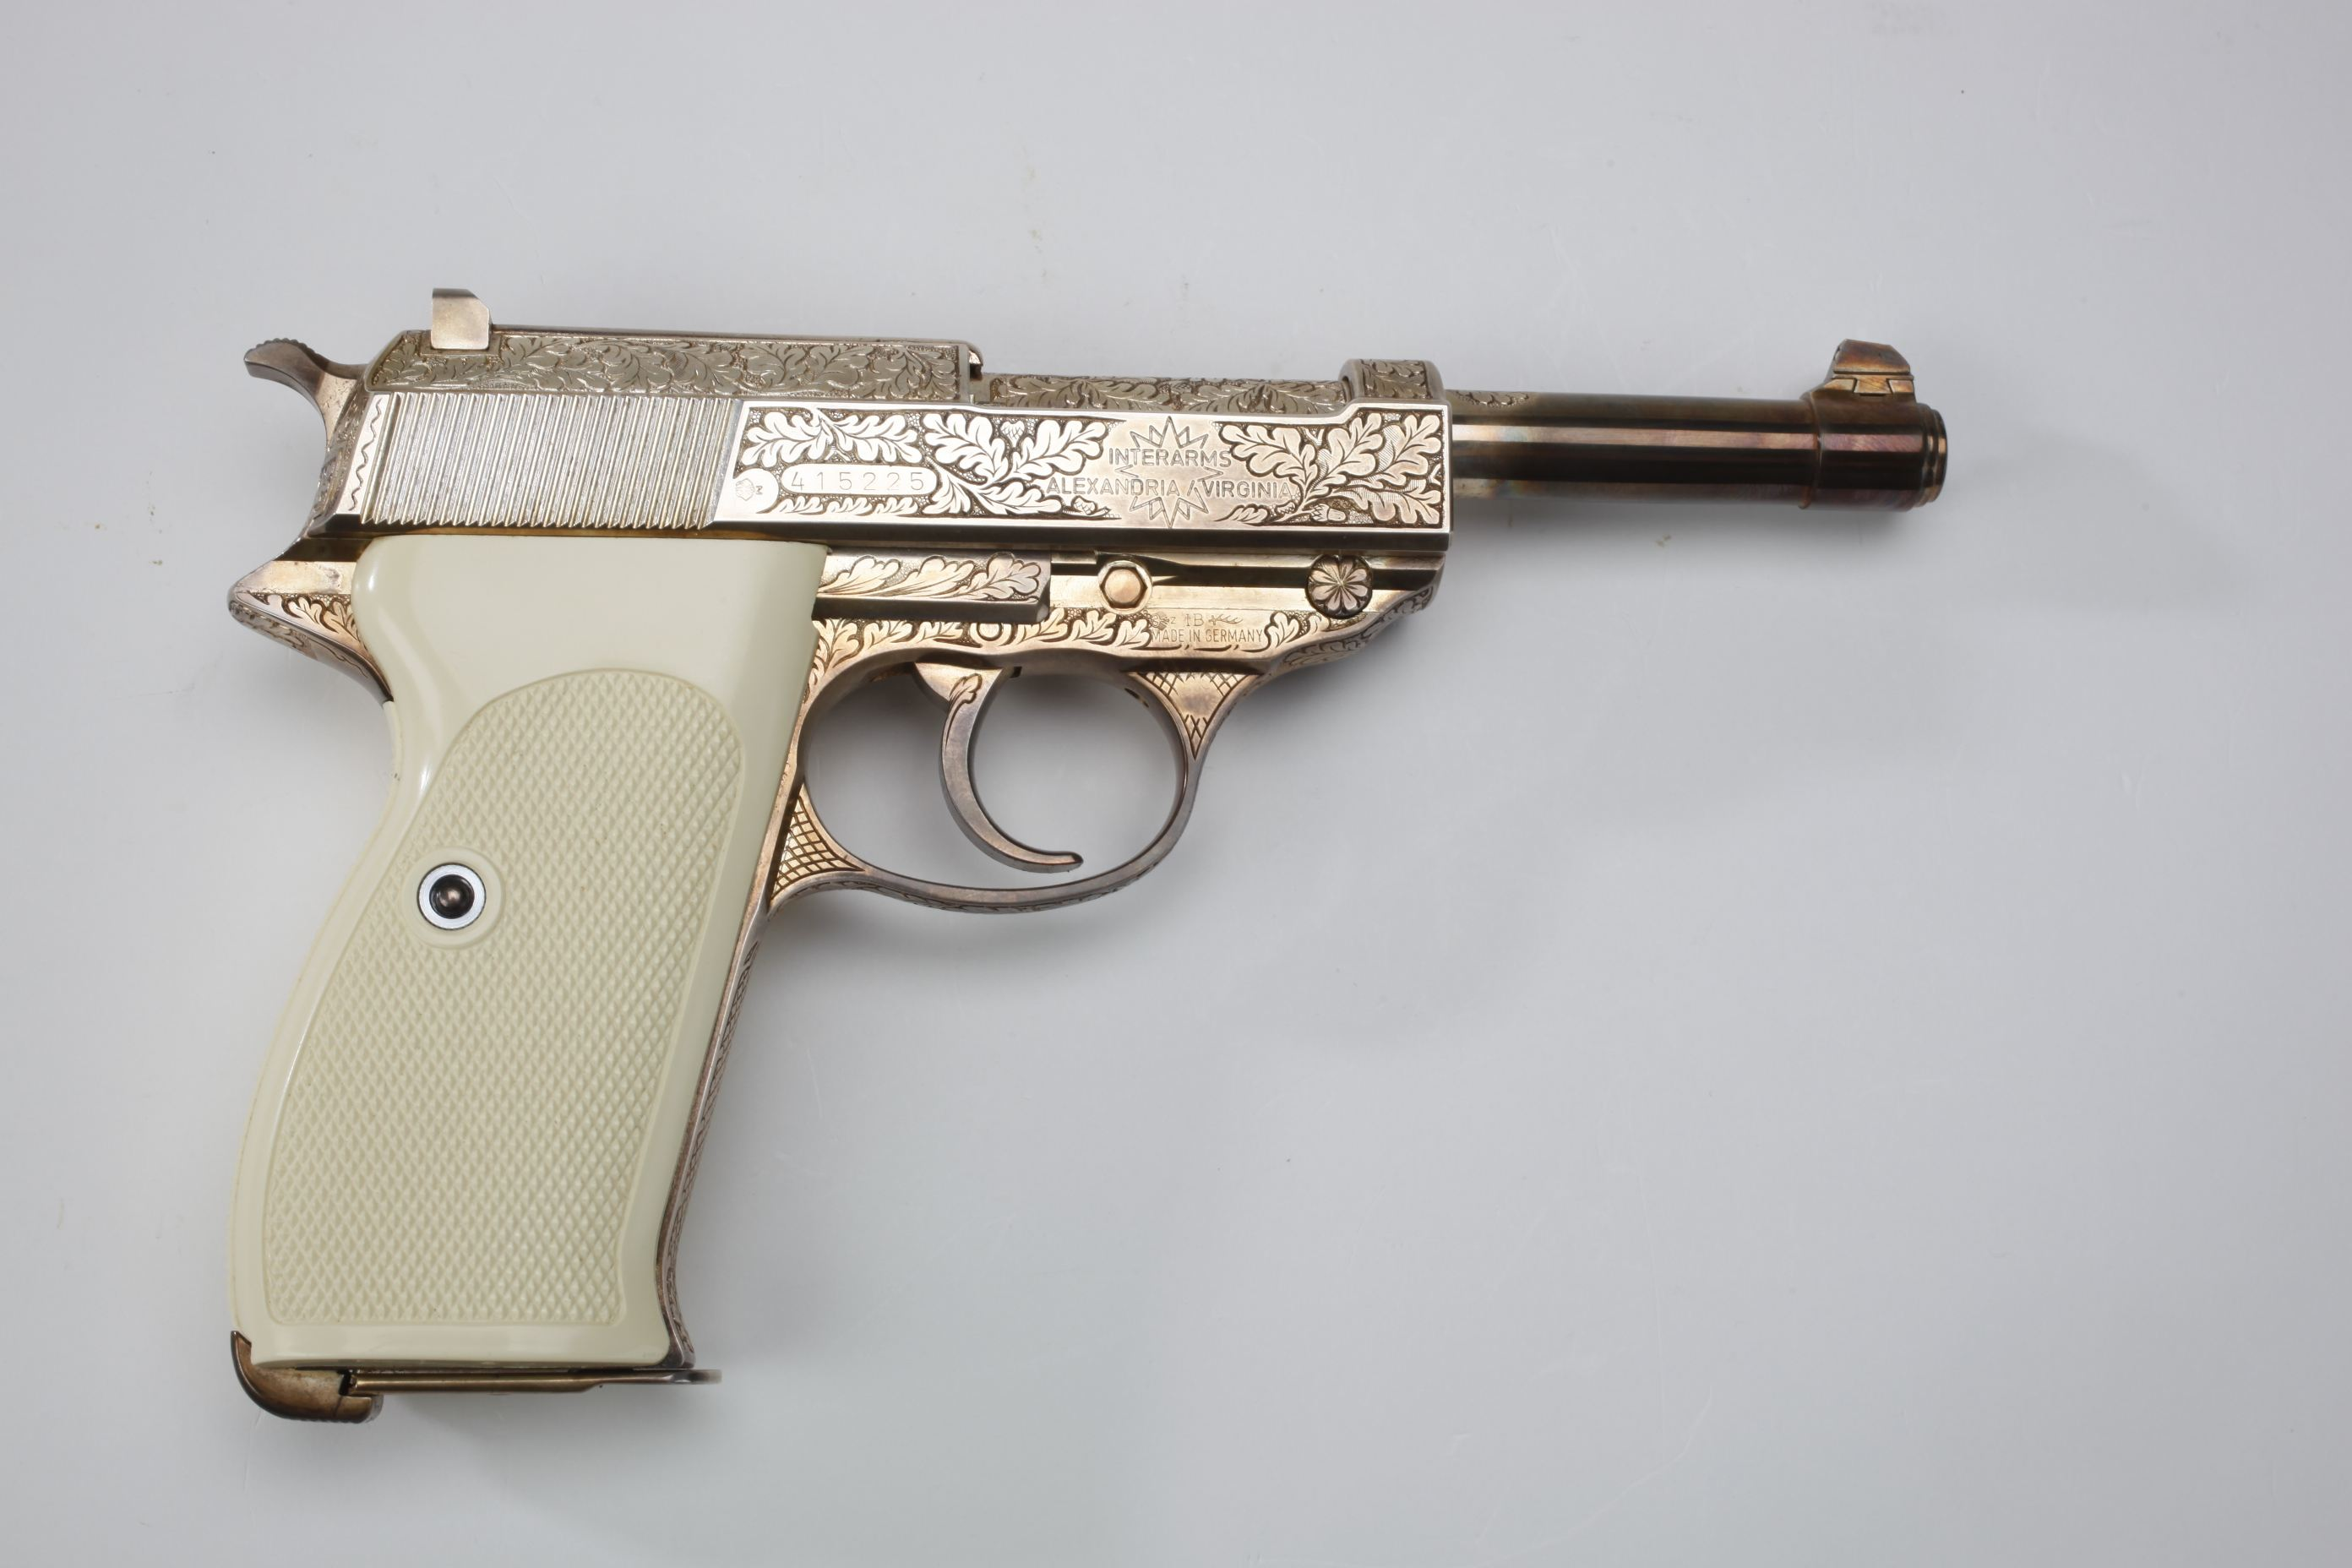 Walther (Ulm, Germany) P.38 Semi-Automatic Pistol